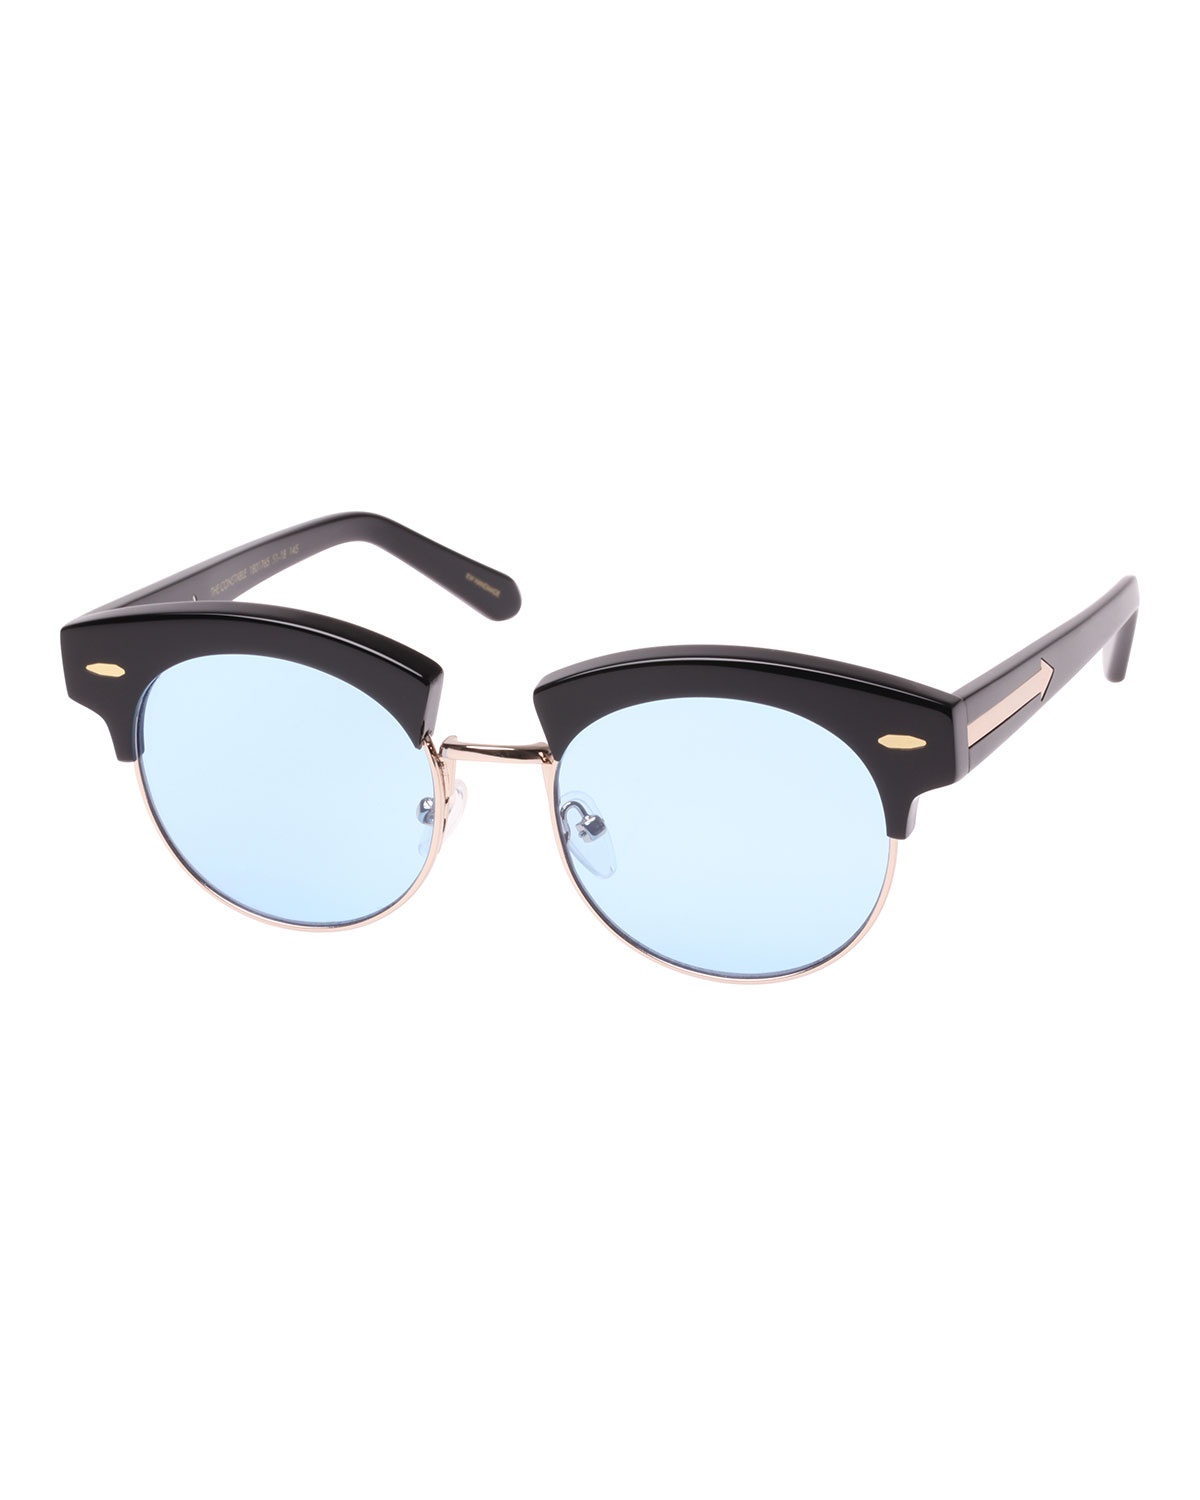 3a14061ecc36 The Constable Round Semi-Rimless Sunglasses